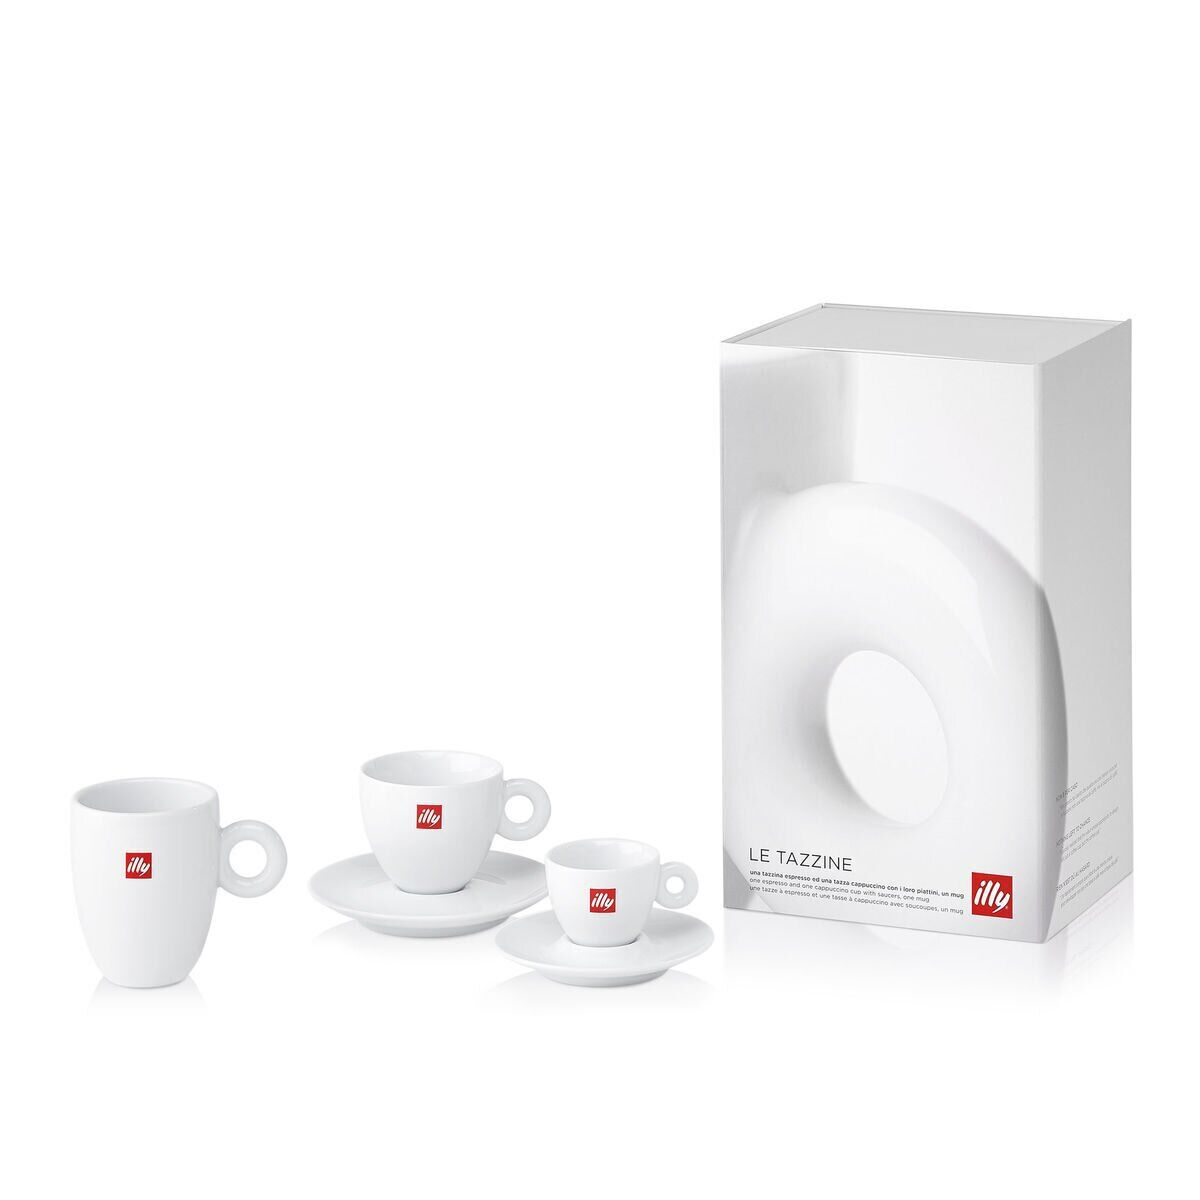 illy Trio of Cups Gift Set - One Espresso Cup, One Cappuccino Cup & One Mug